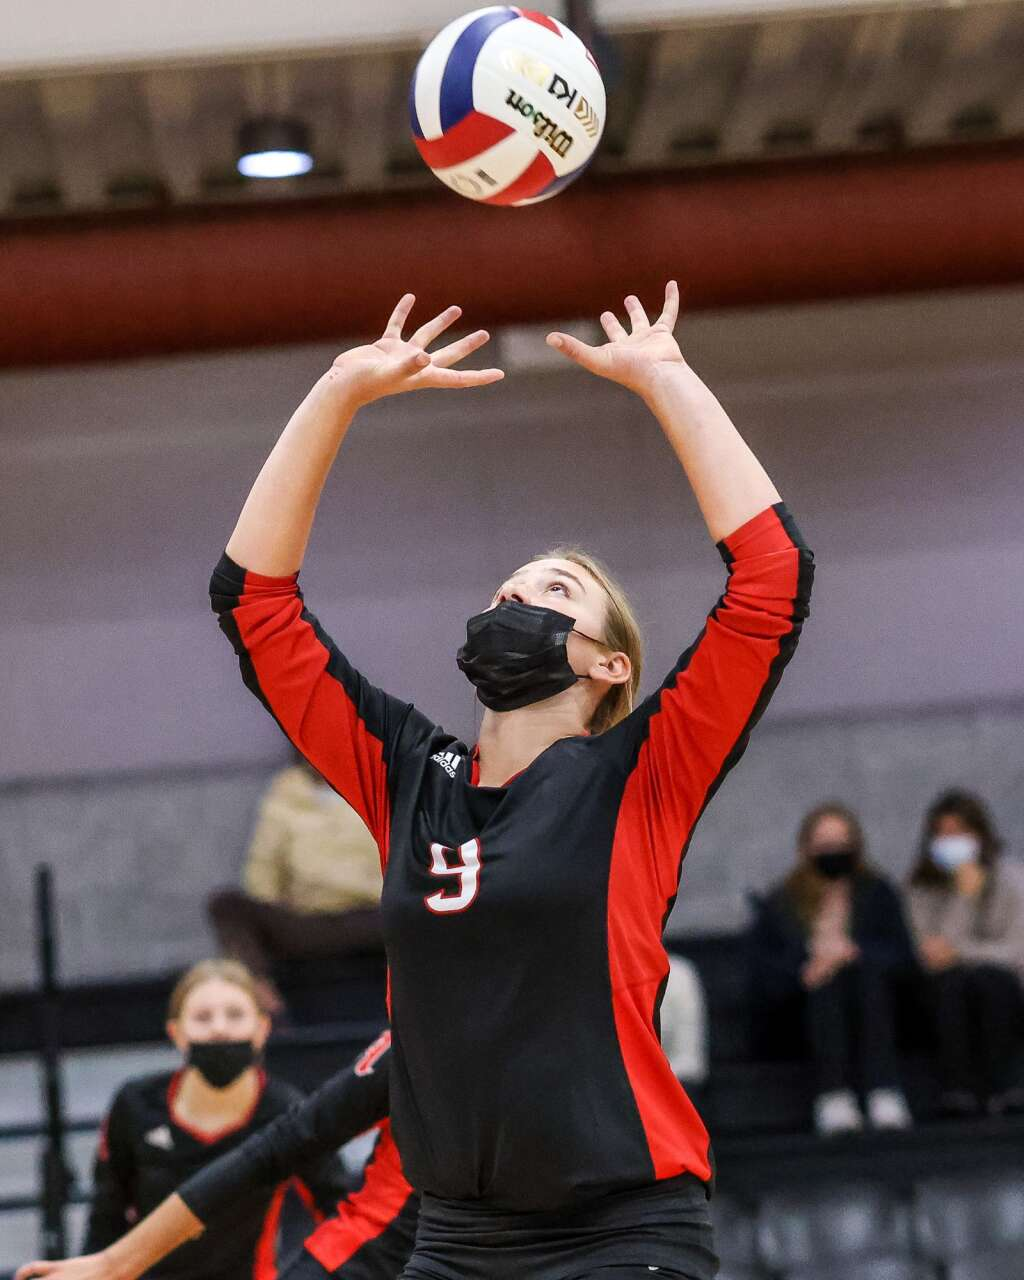 Aspen High School's Maddie Lee sets the ball as the AHS volleyball team hosts Glenwood Springs on Thursday, Aug. 19, 2021, inside the AHS gymnasium. The Skiers won, 3-2. Photo by Austin Colbert/The Aspen Times.